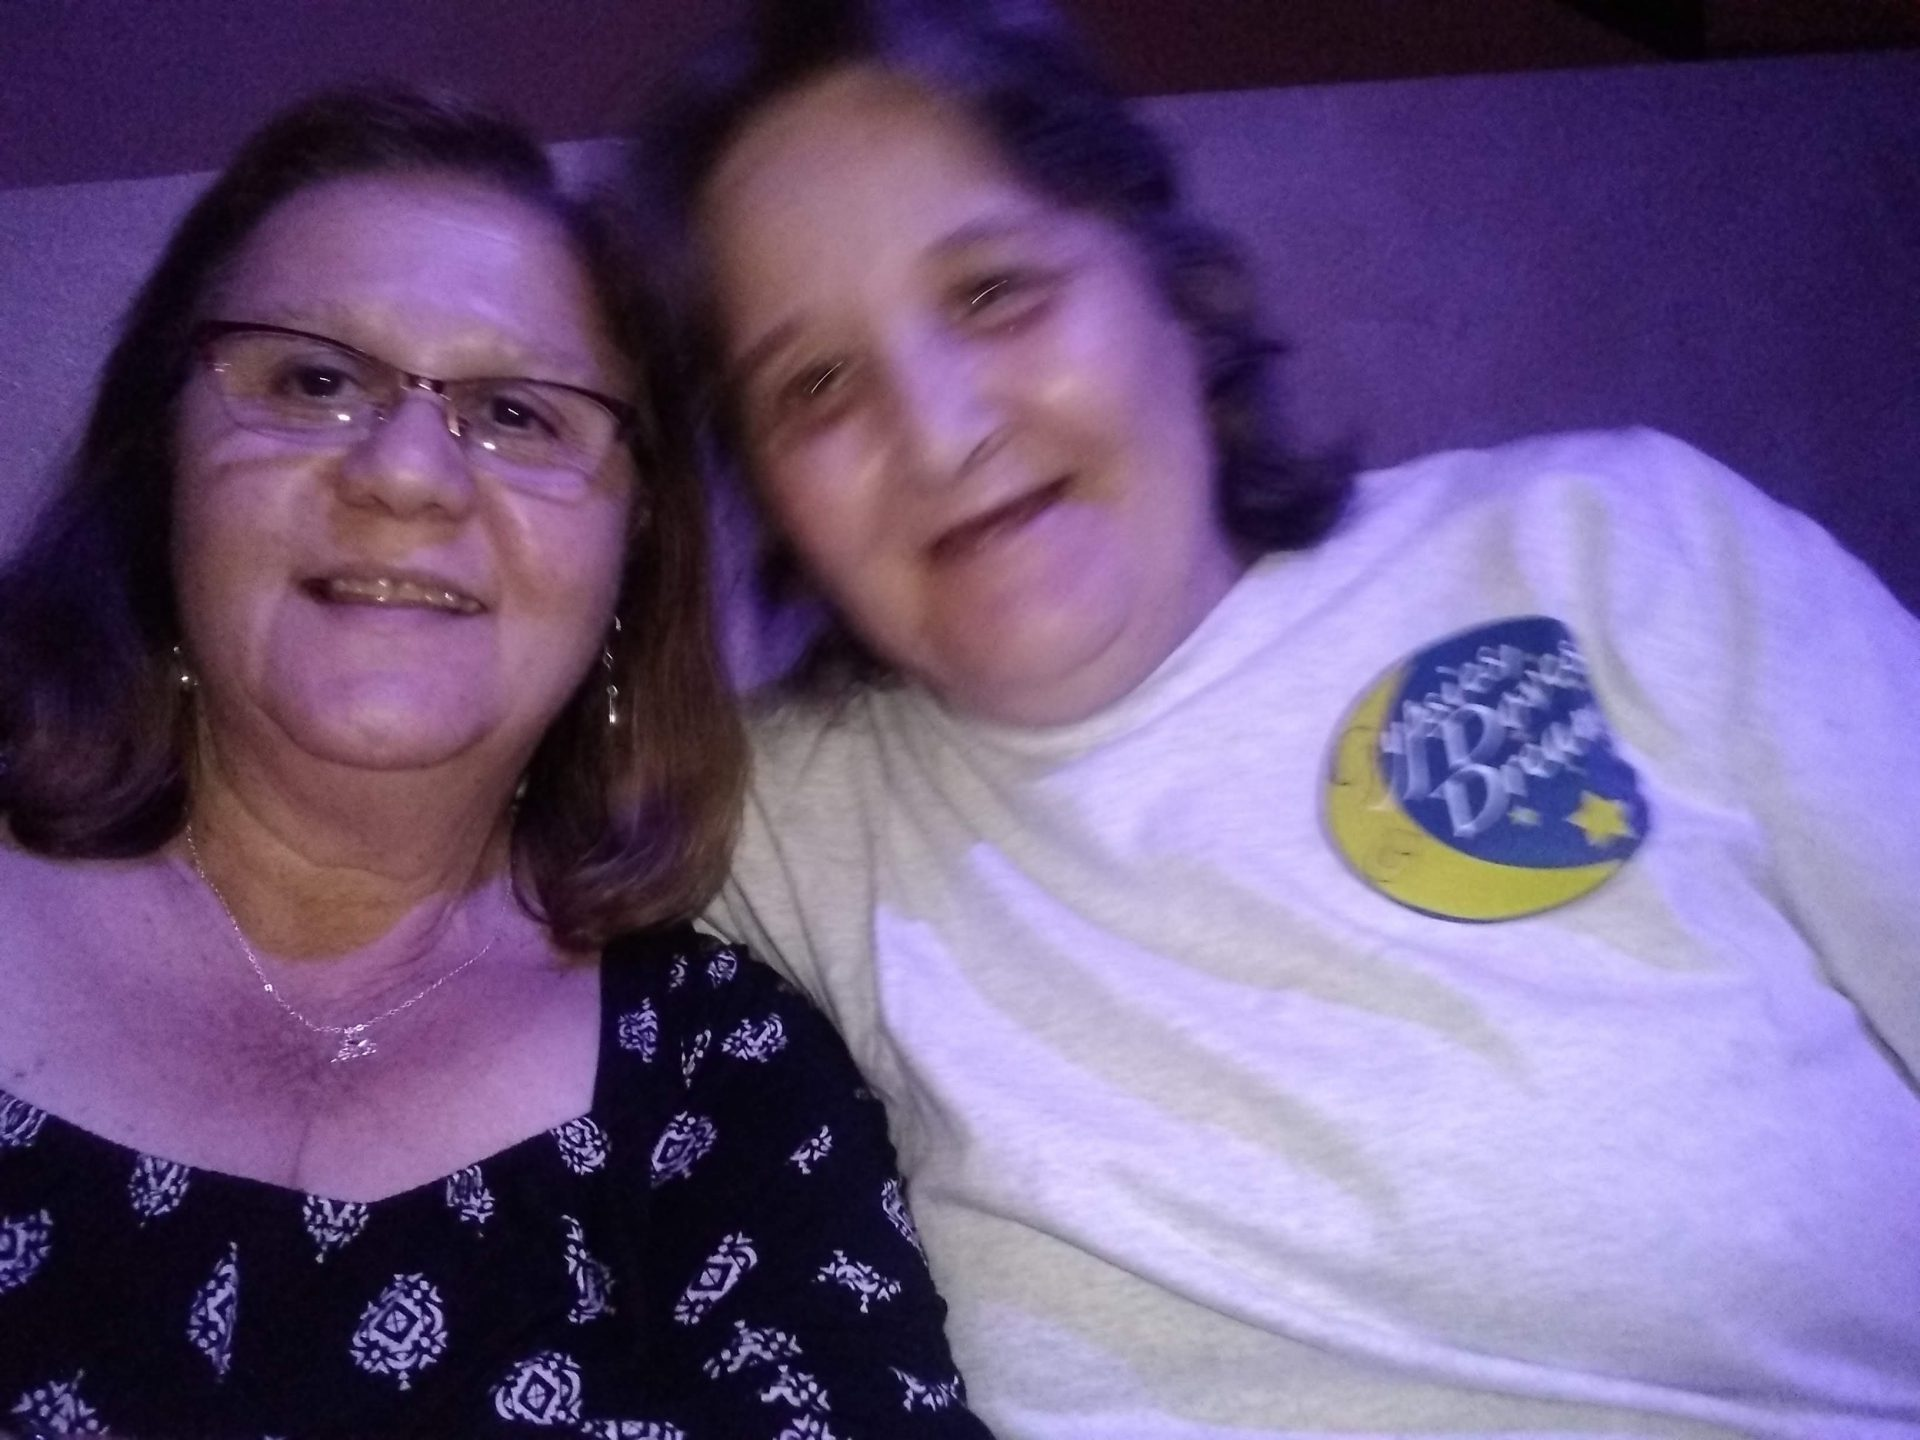 Rosie and me at a Stevie Nicks tribute concert